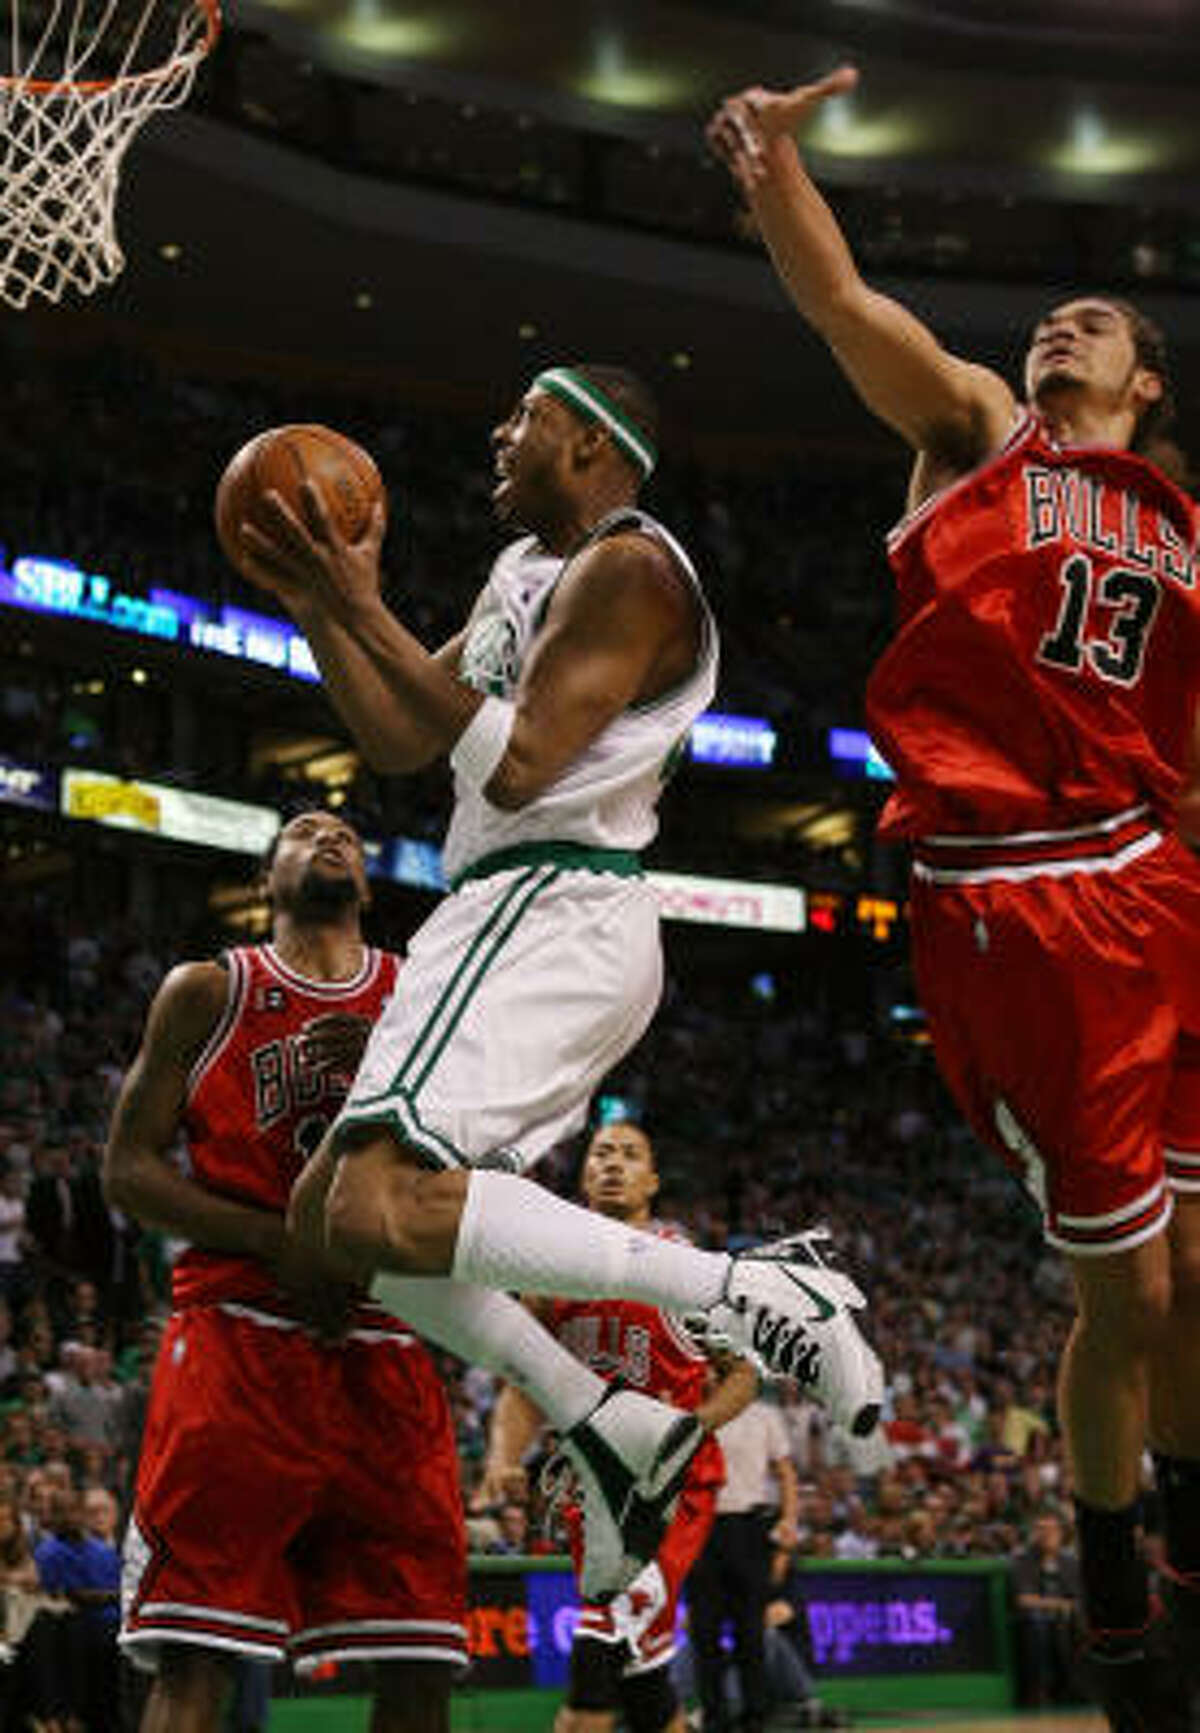 Boston's Paul Pierce (center) goes up for a shot between Chicago's John Salmons (left) and Joakim Noah in Game 7 of their Eastern Conference first-round playoff series Saturday. Boston won 109-99 to claim the best-of-seven series and advances to the second round to face the Orlando Magic.